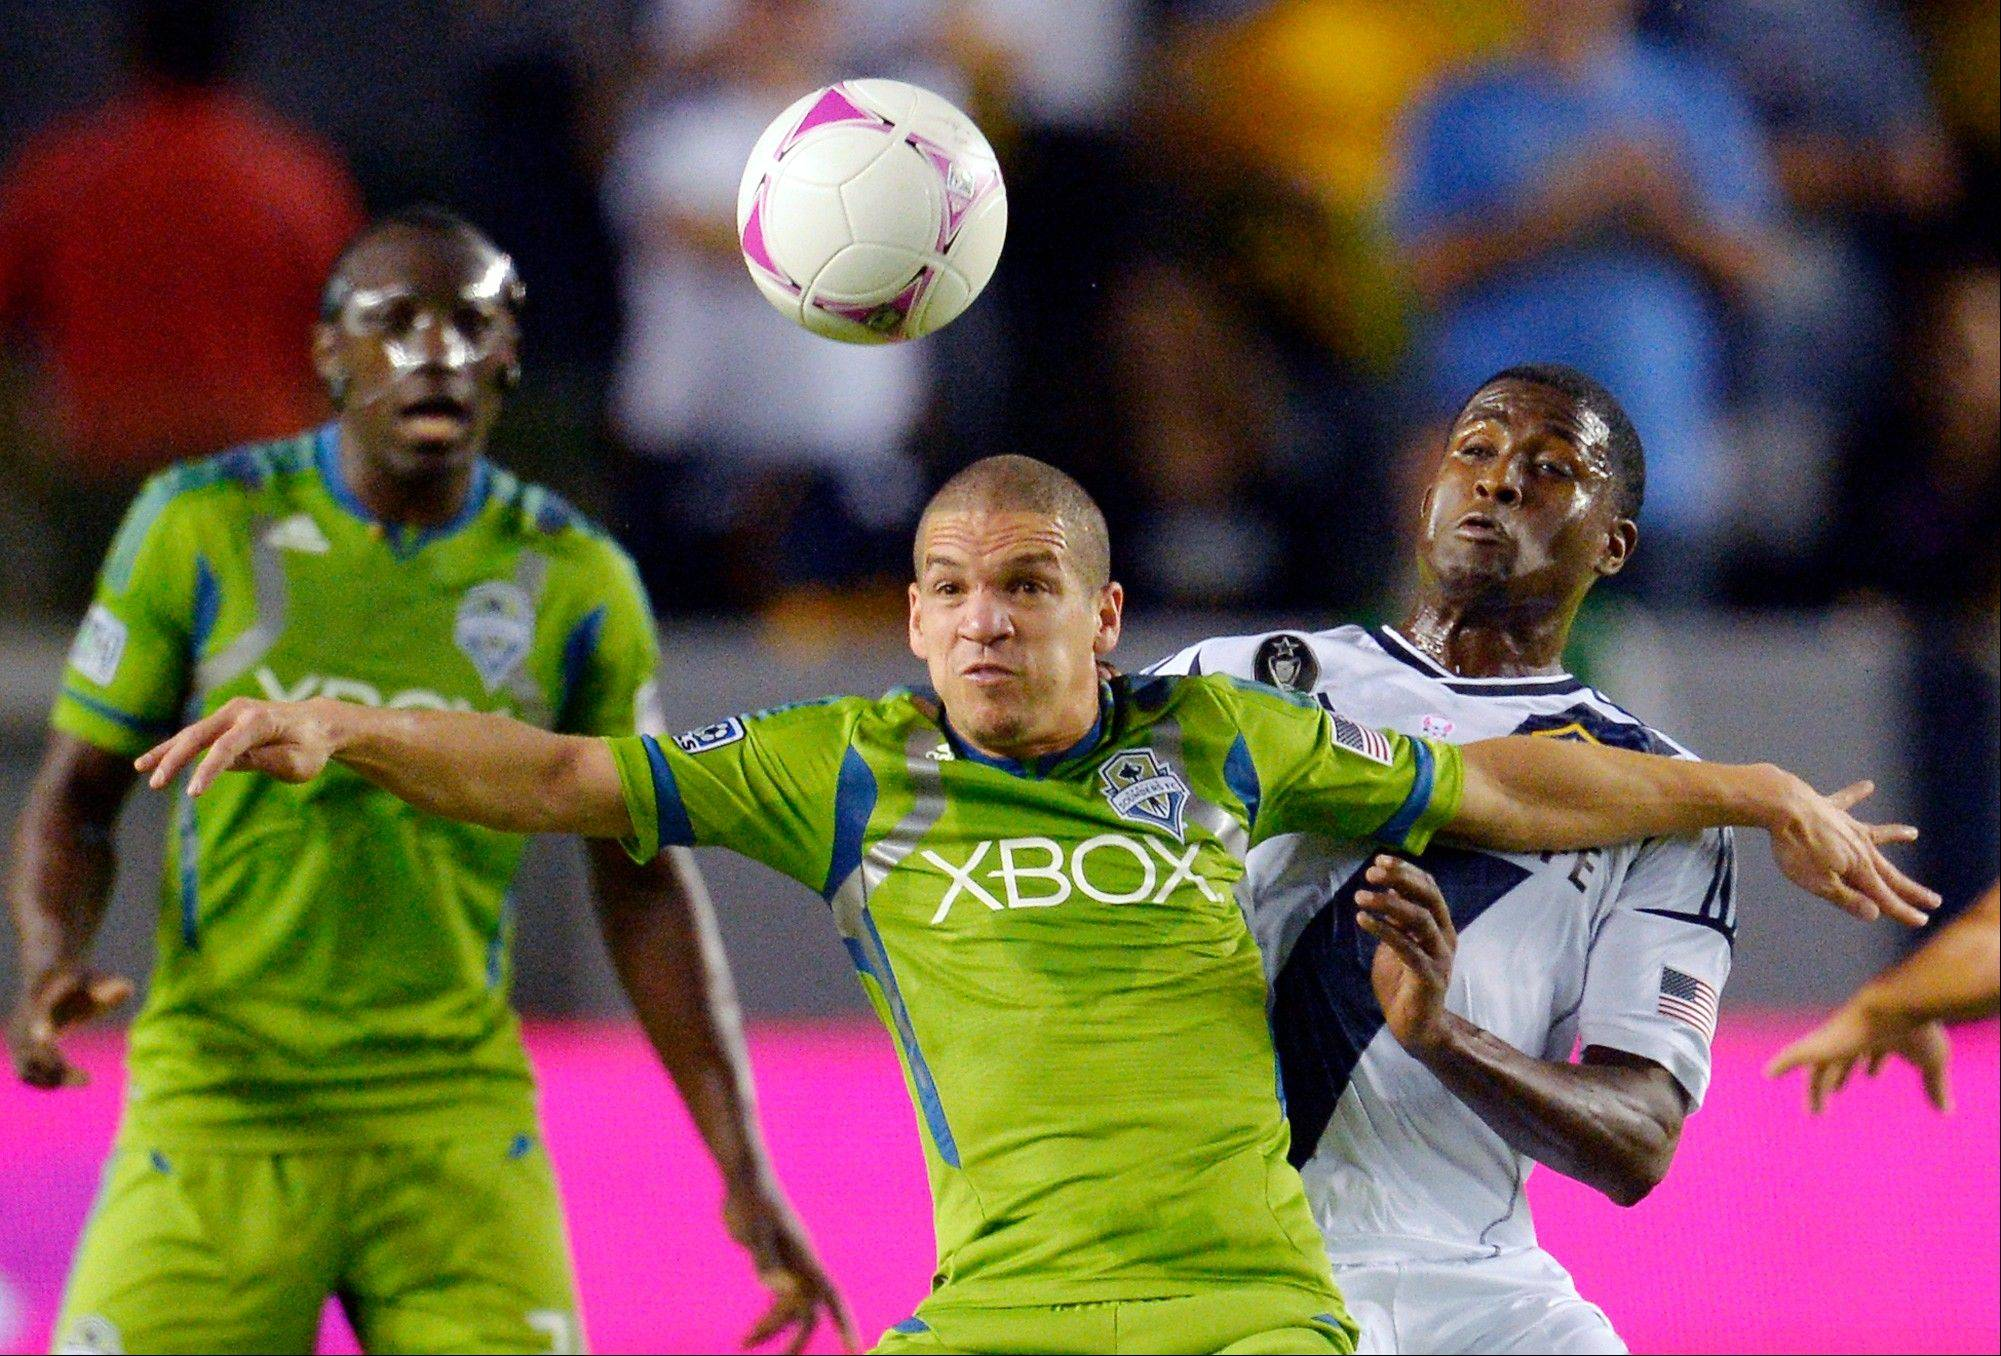 Seattle Sounders FC midfielder Osvaldo Alonso, center, and Los Angeles Galaxy forward Edson Buddle battle for the ball as midfielder Brad Evans watches during the first half of their MLS soccer match, Sunday, Oct. 28, 2012, in Carson, Calif.